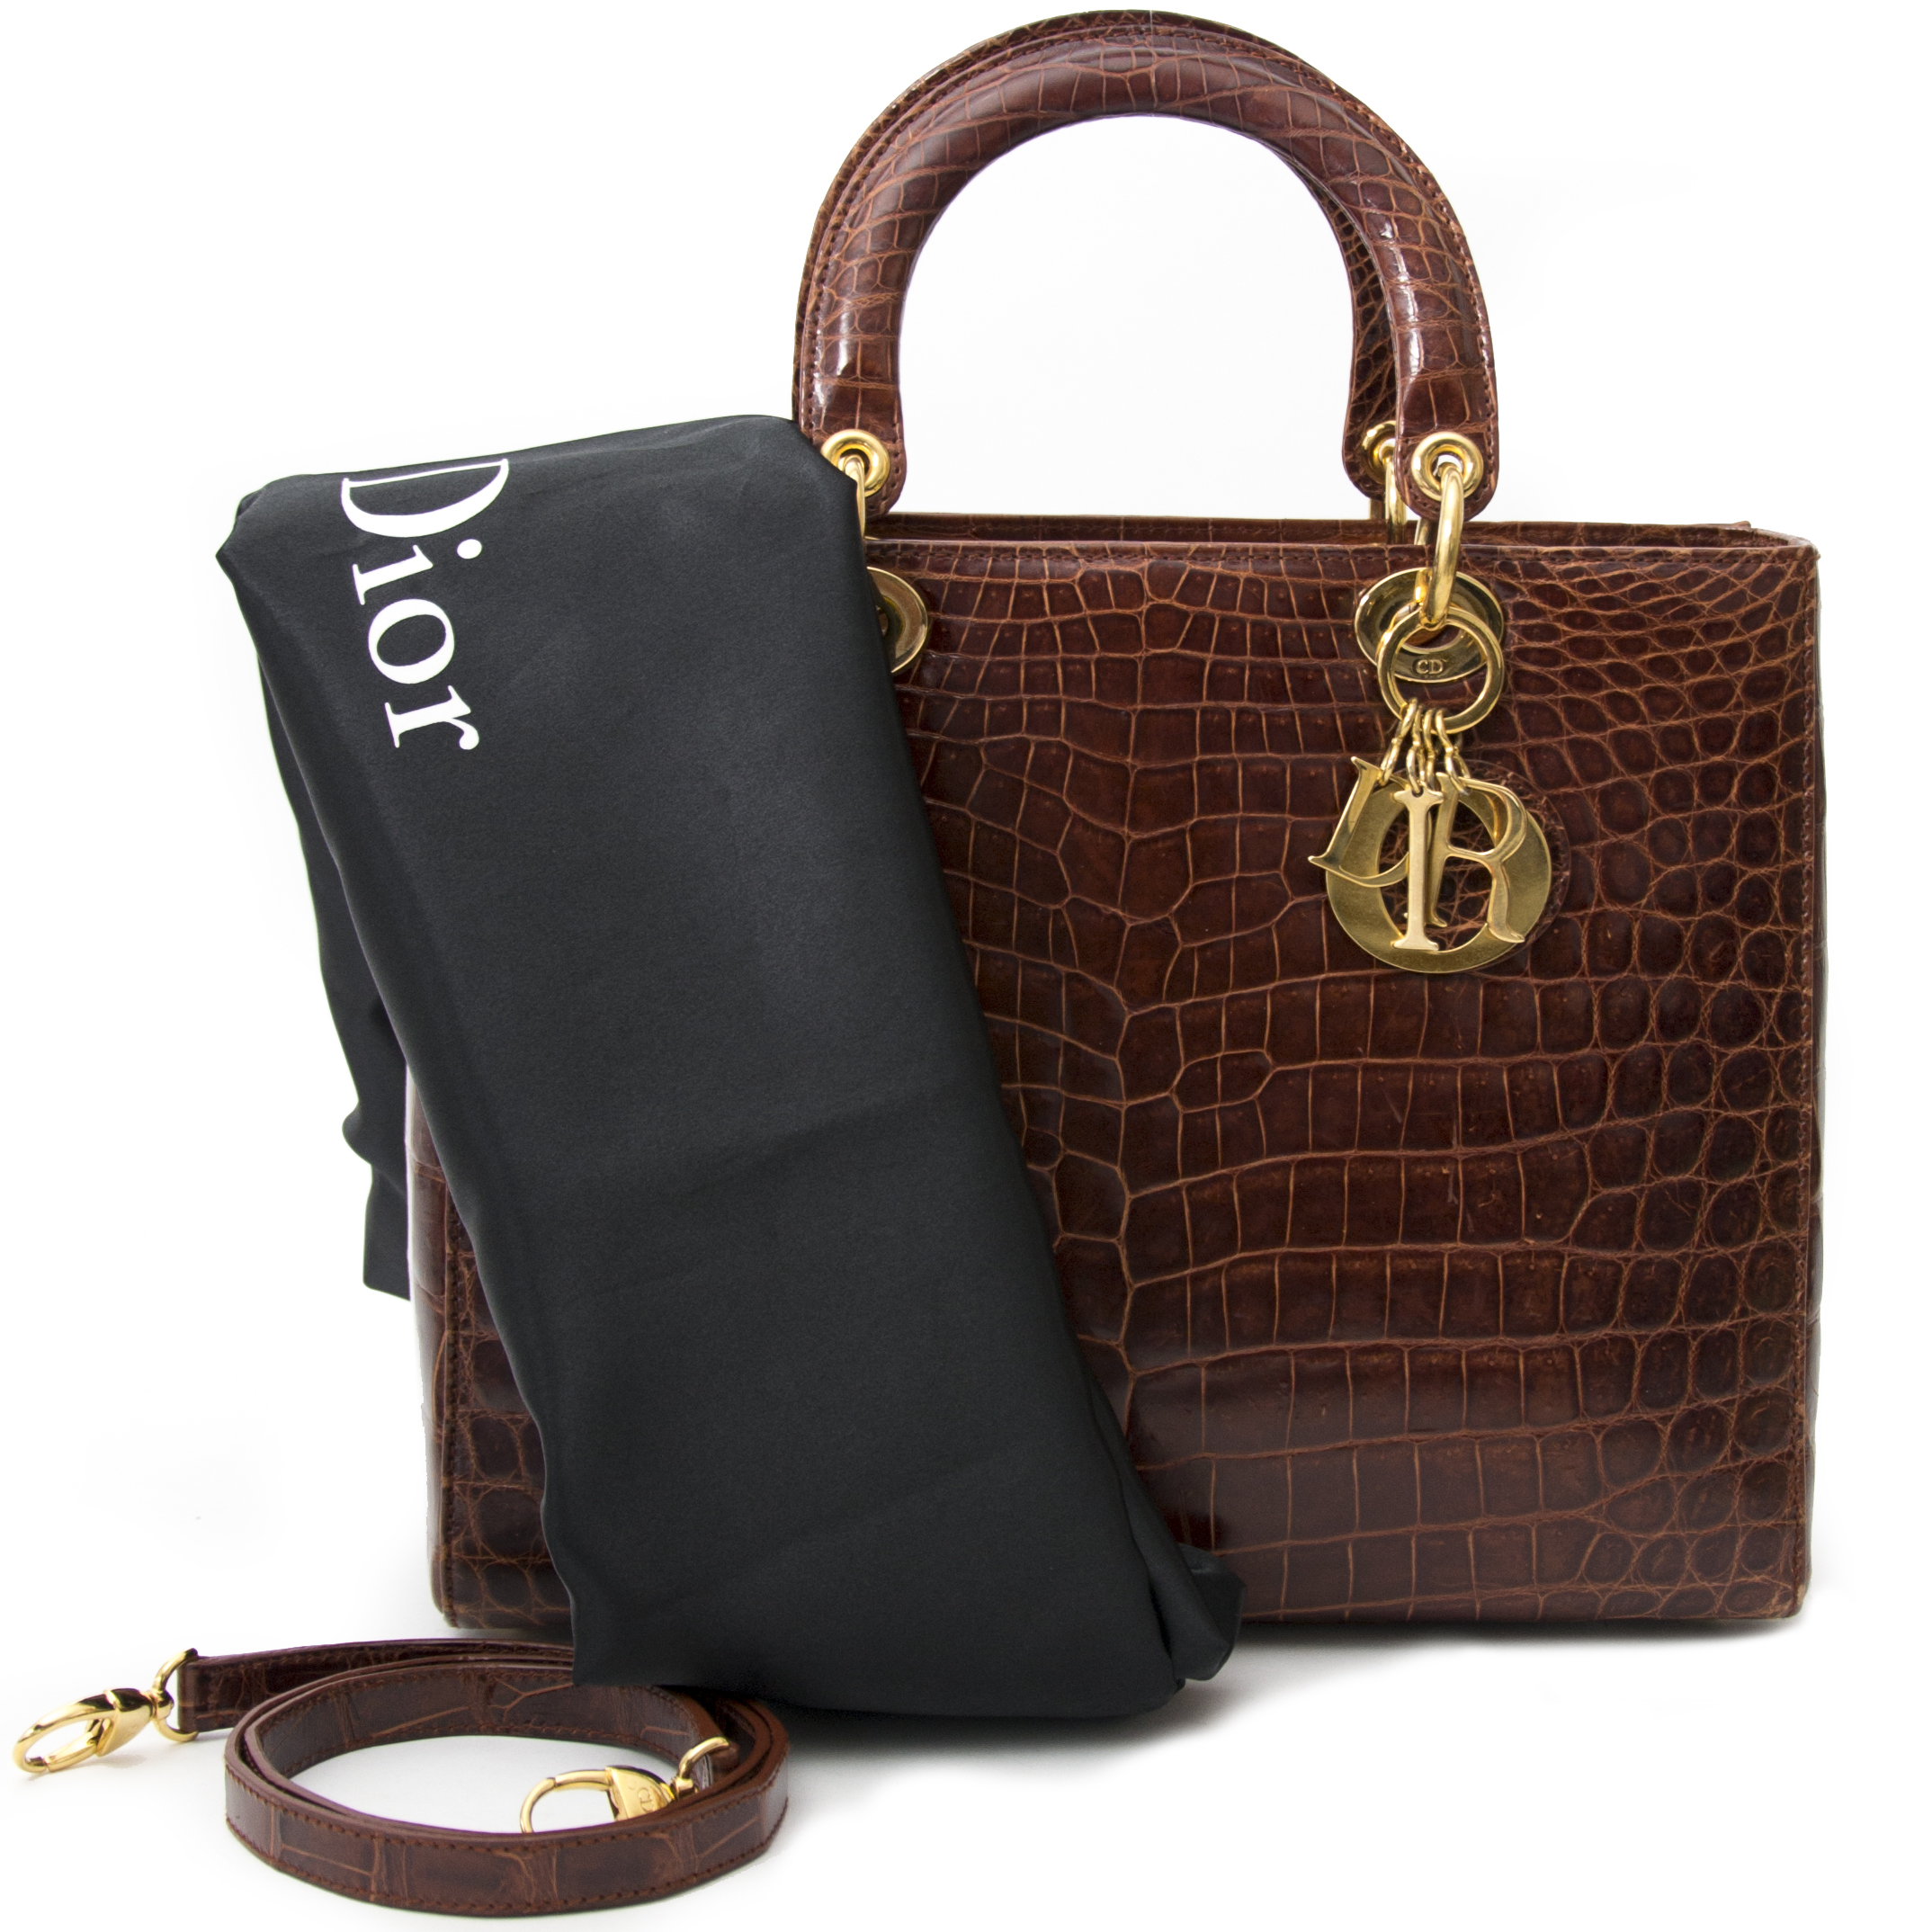 07b711de677e ... searching for secondhand vintage luxury at the best price   wolrdwide  shipping Dior Croco Lady Dior